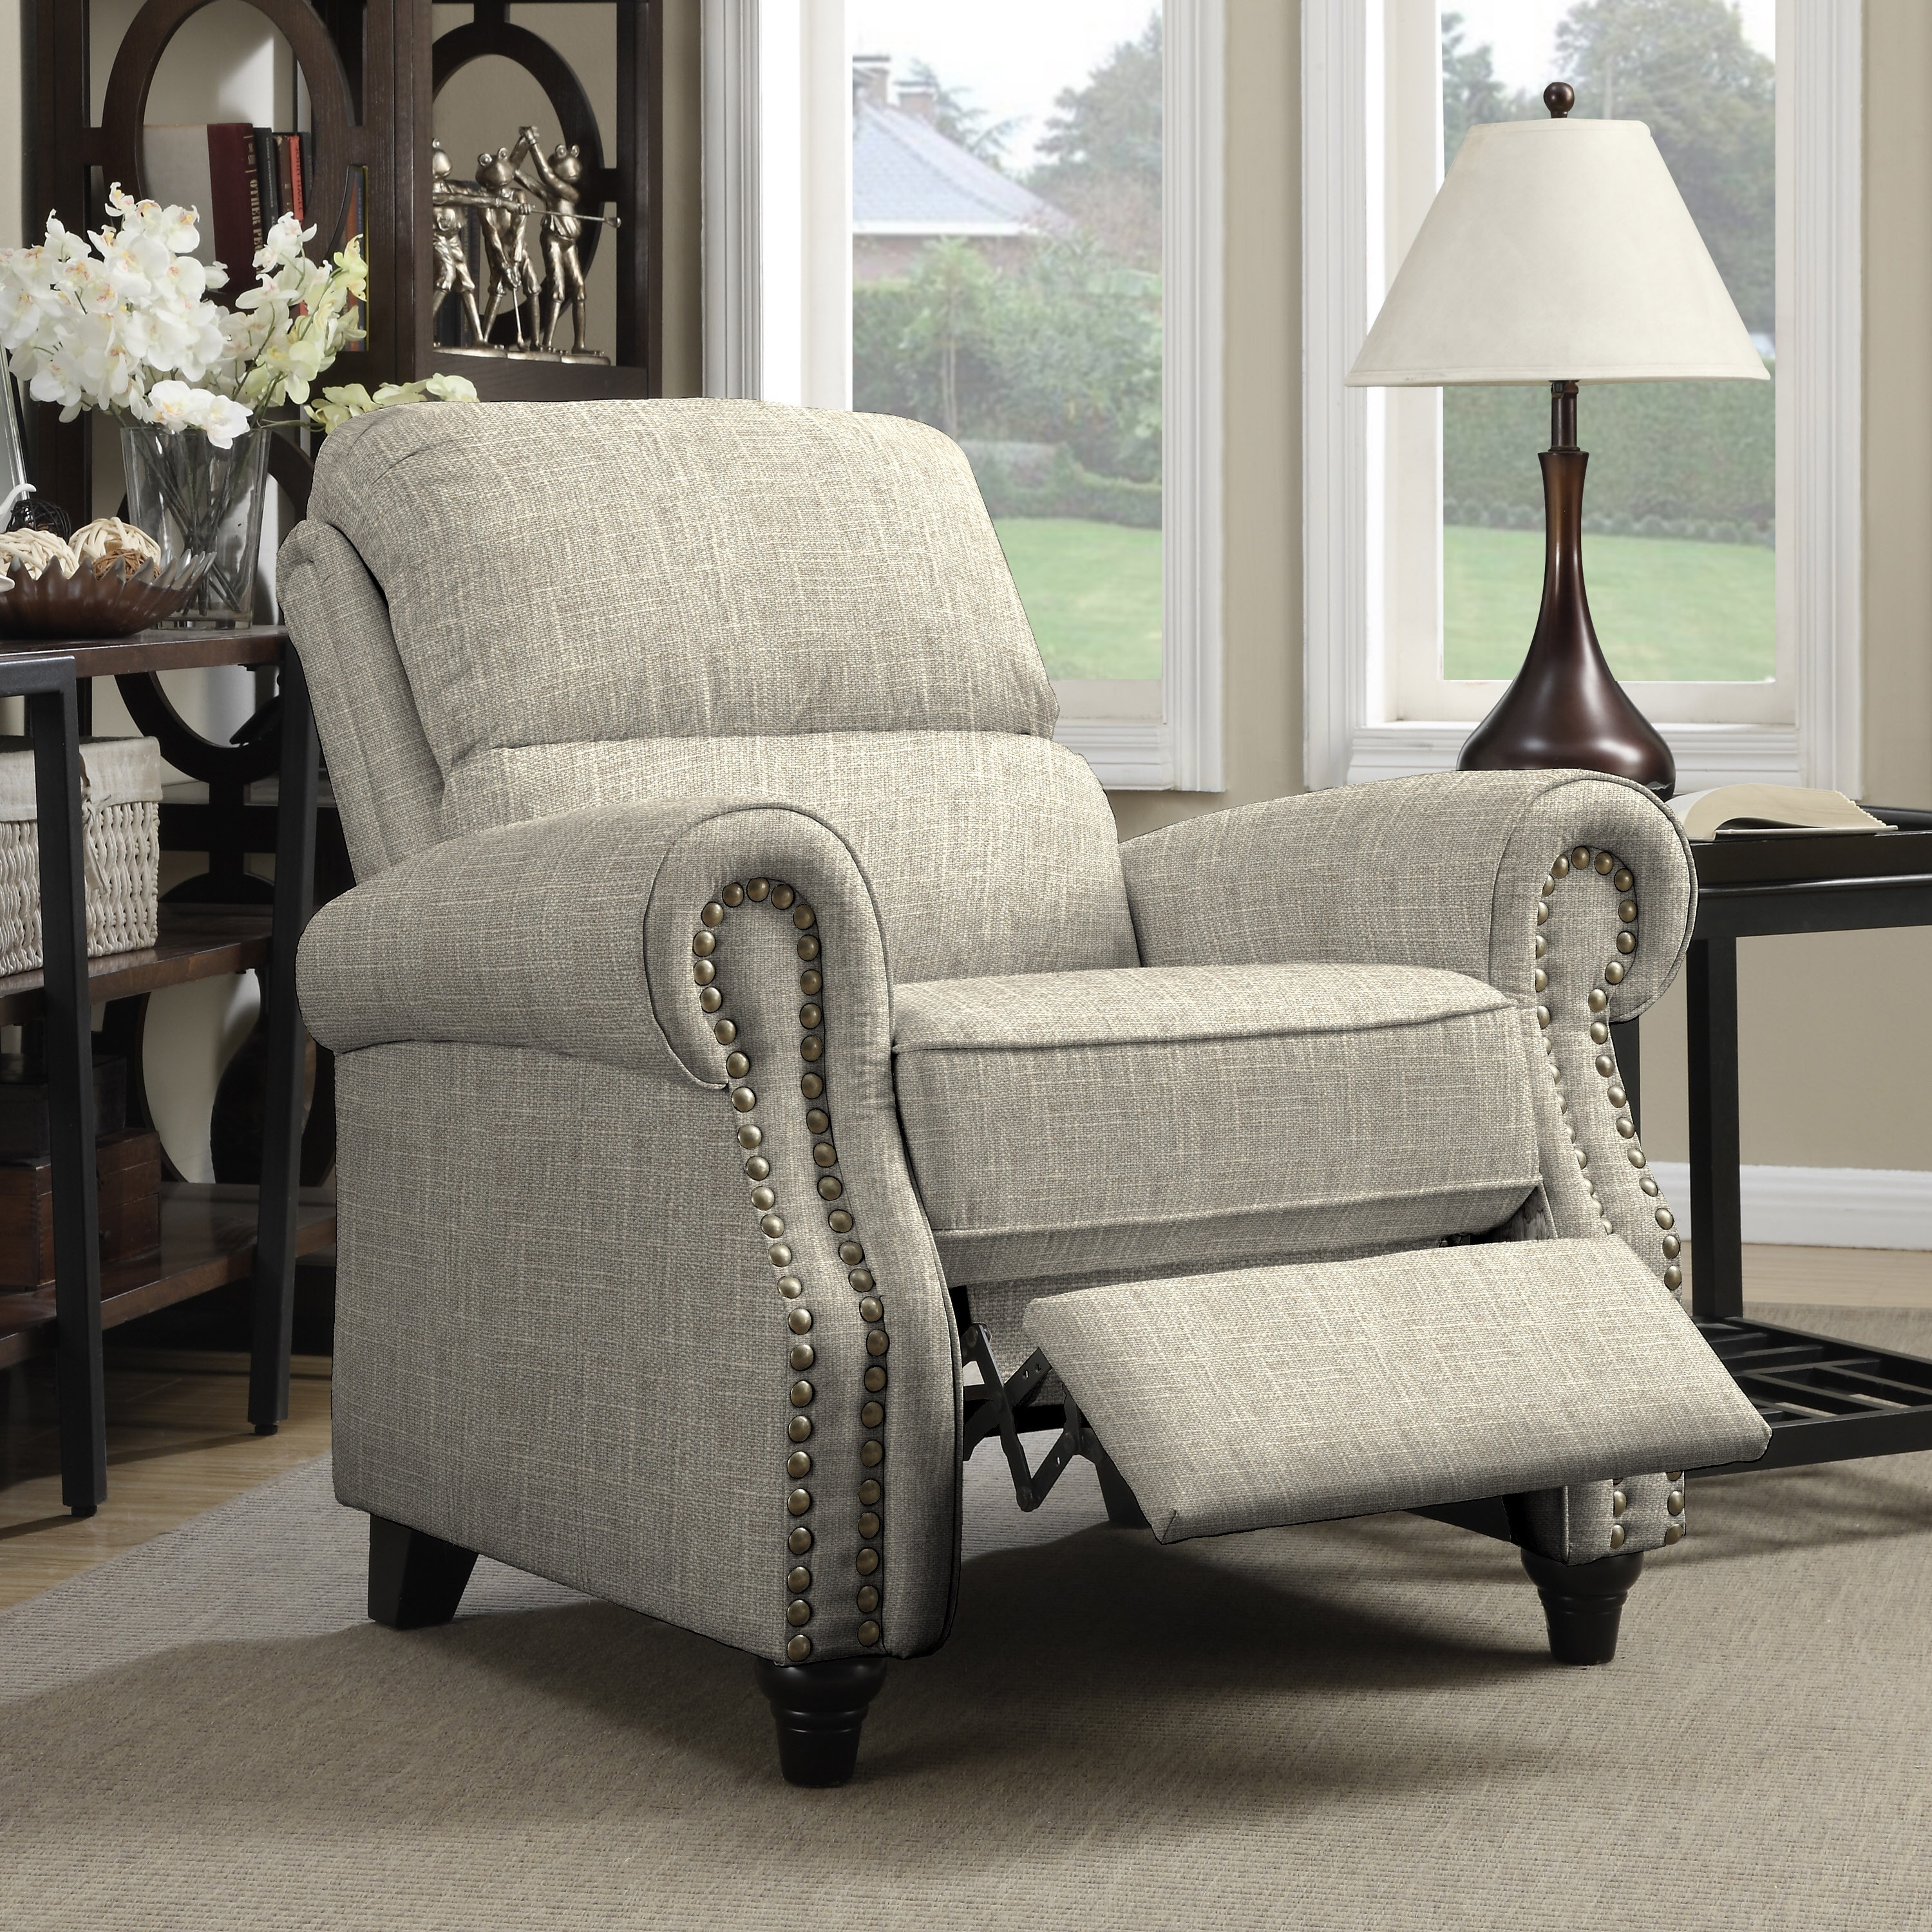 Shop copper grove umpqua tan linen push back recliner chair on sale free shipping today overstock com 20689686